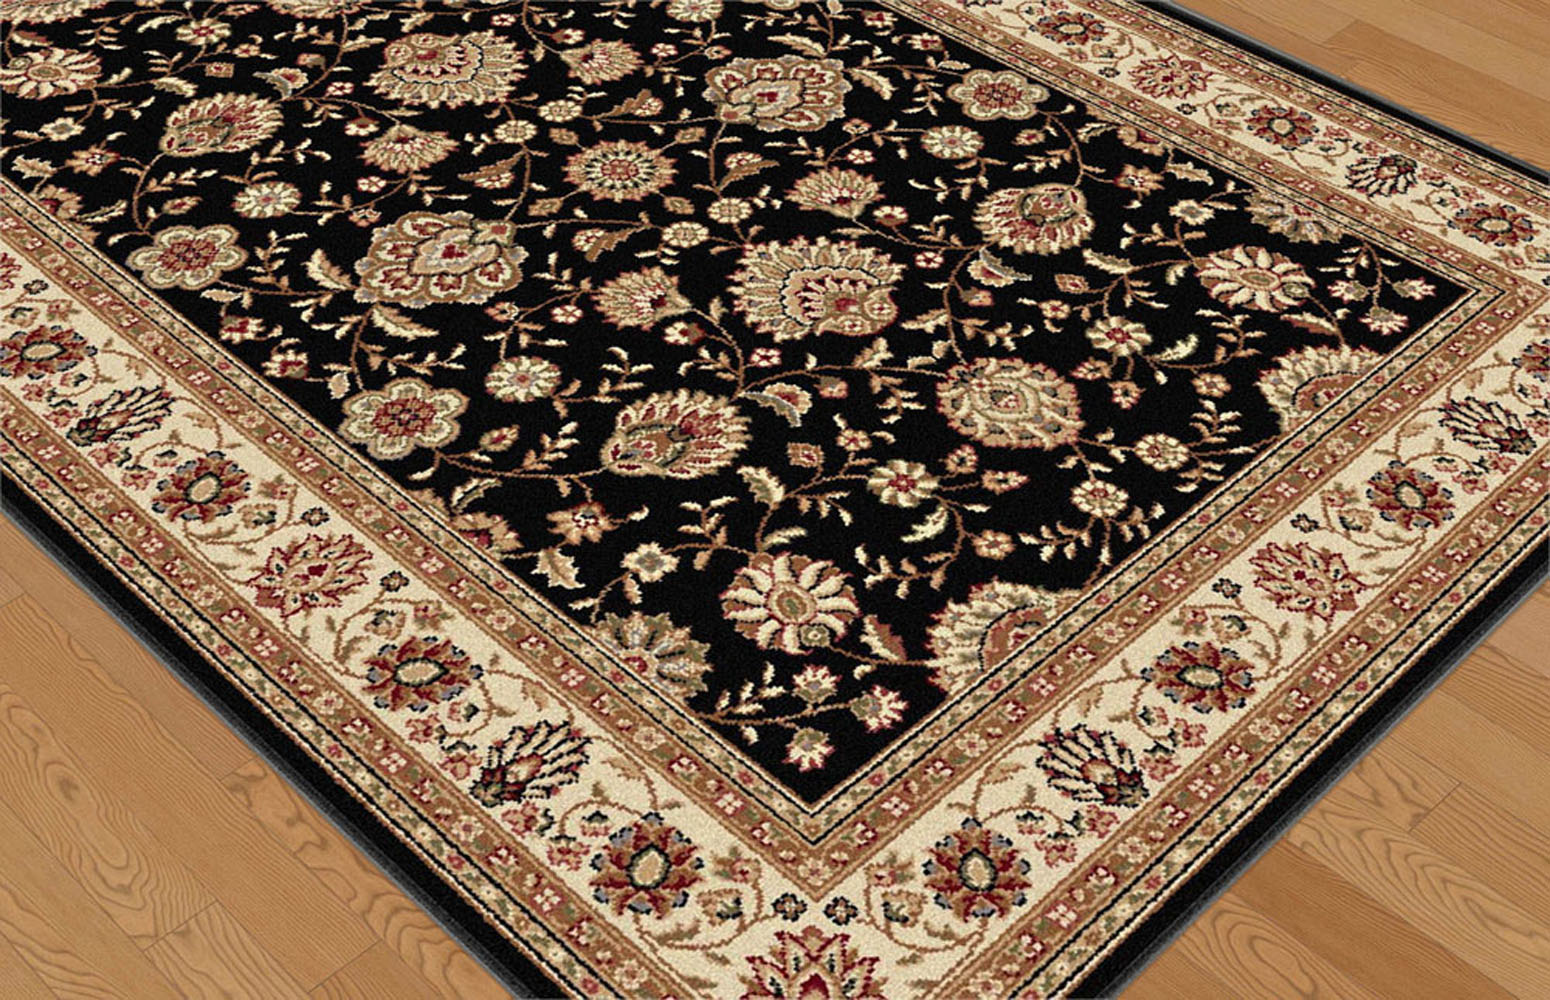 Black Traditional Persian Floral Area Rug Red Ivory